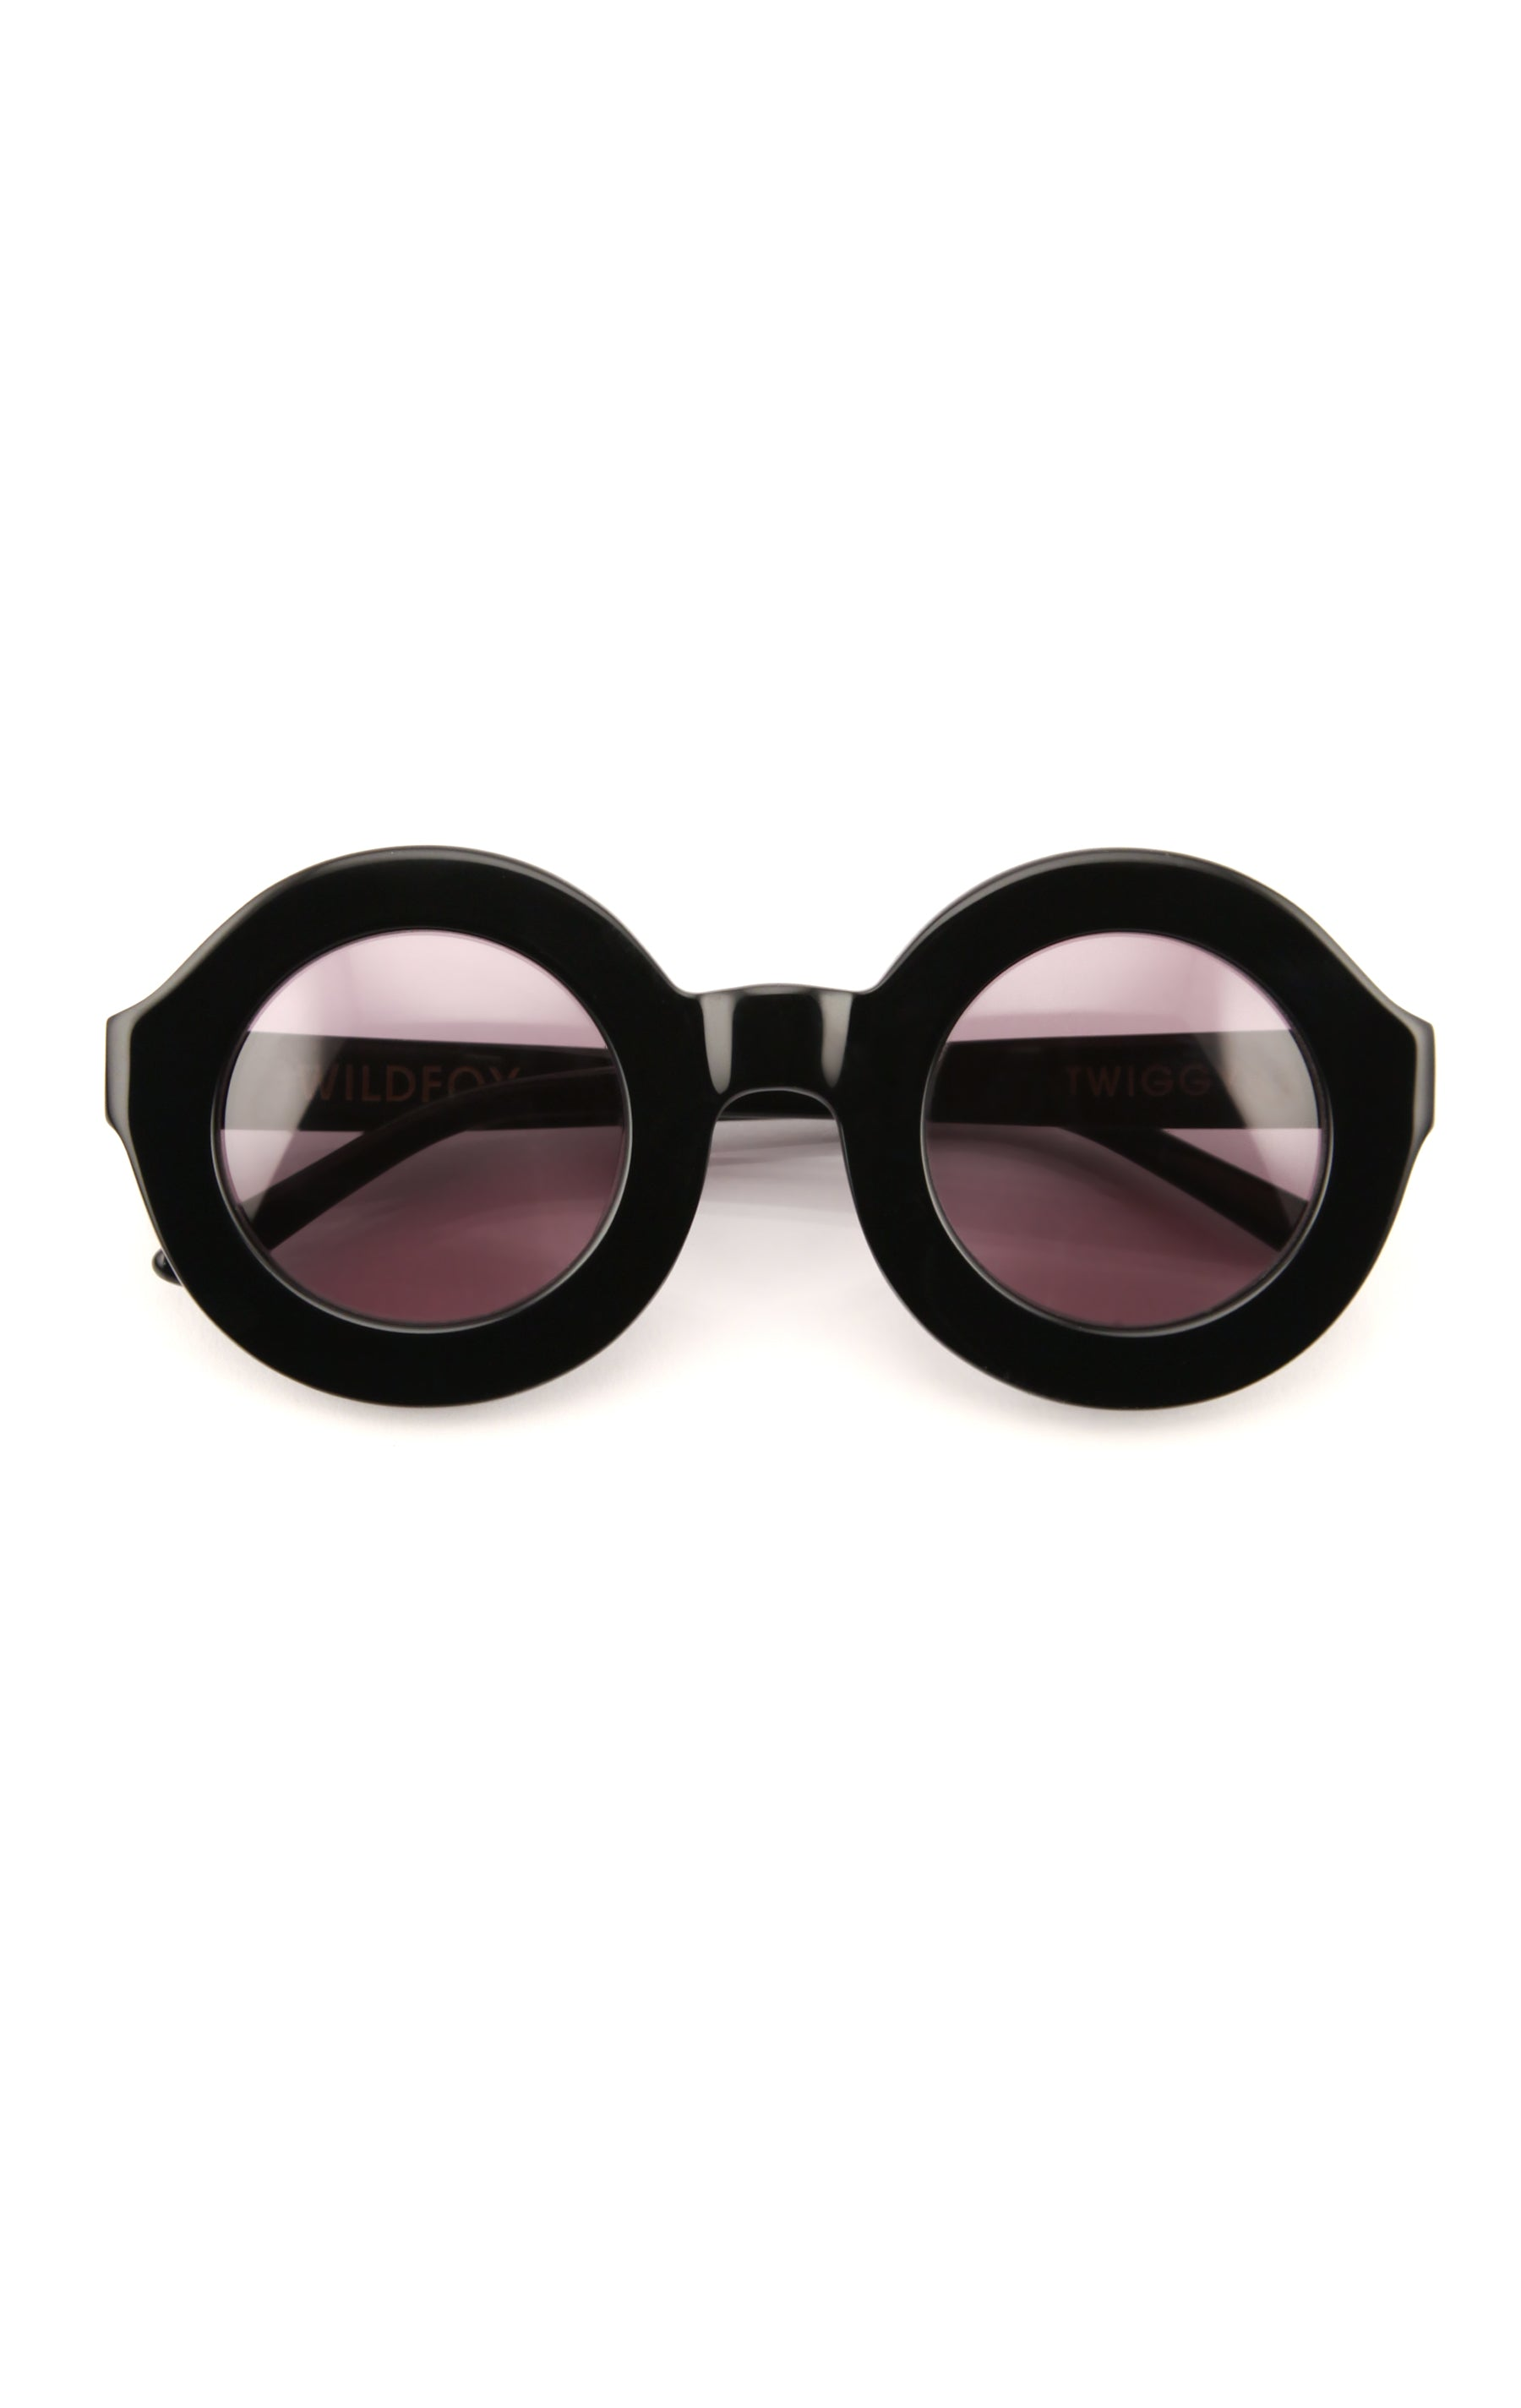 26c6080181 Twiggy Sunglasses